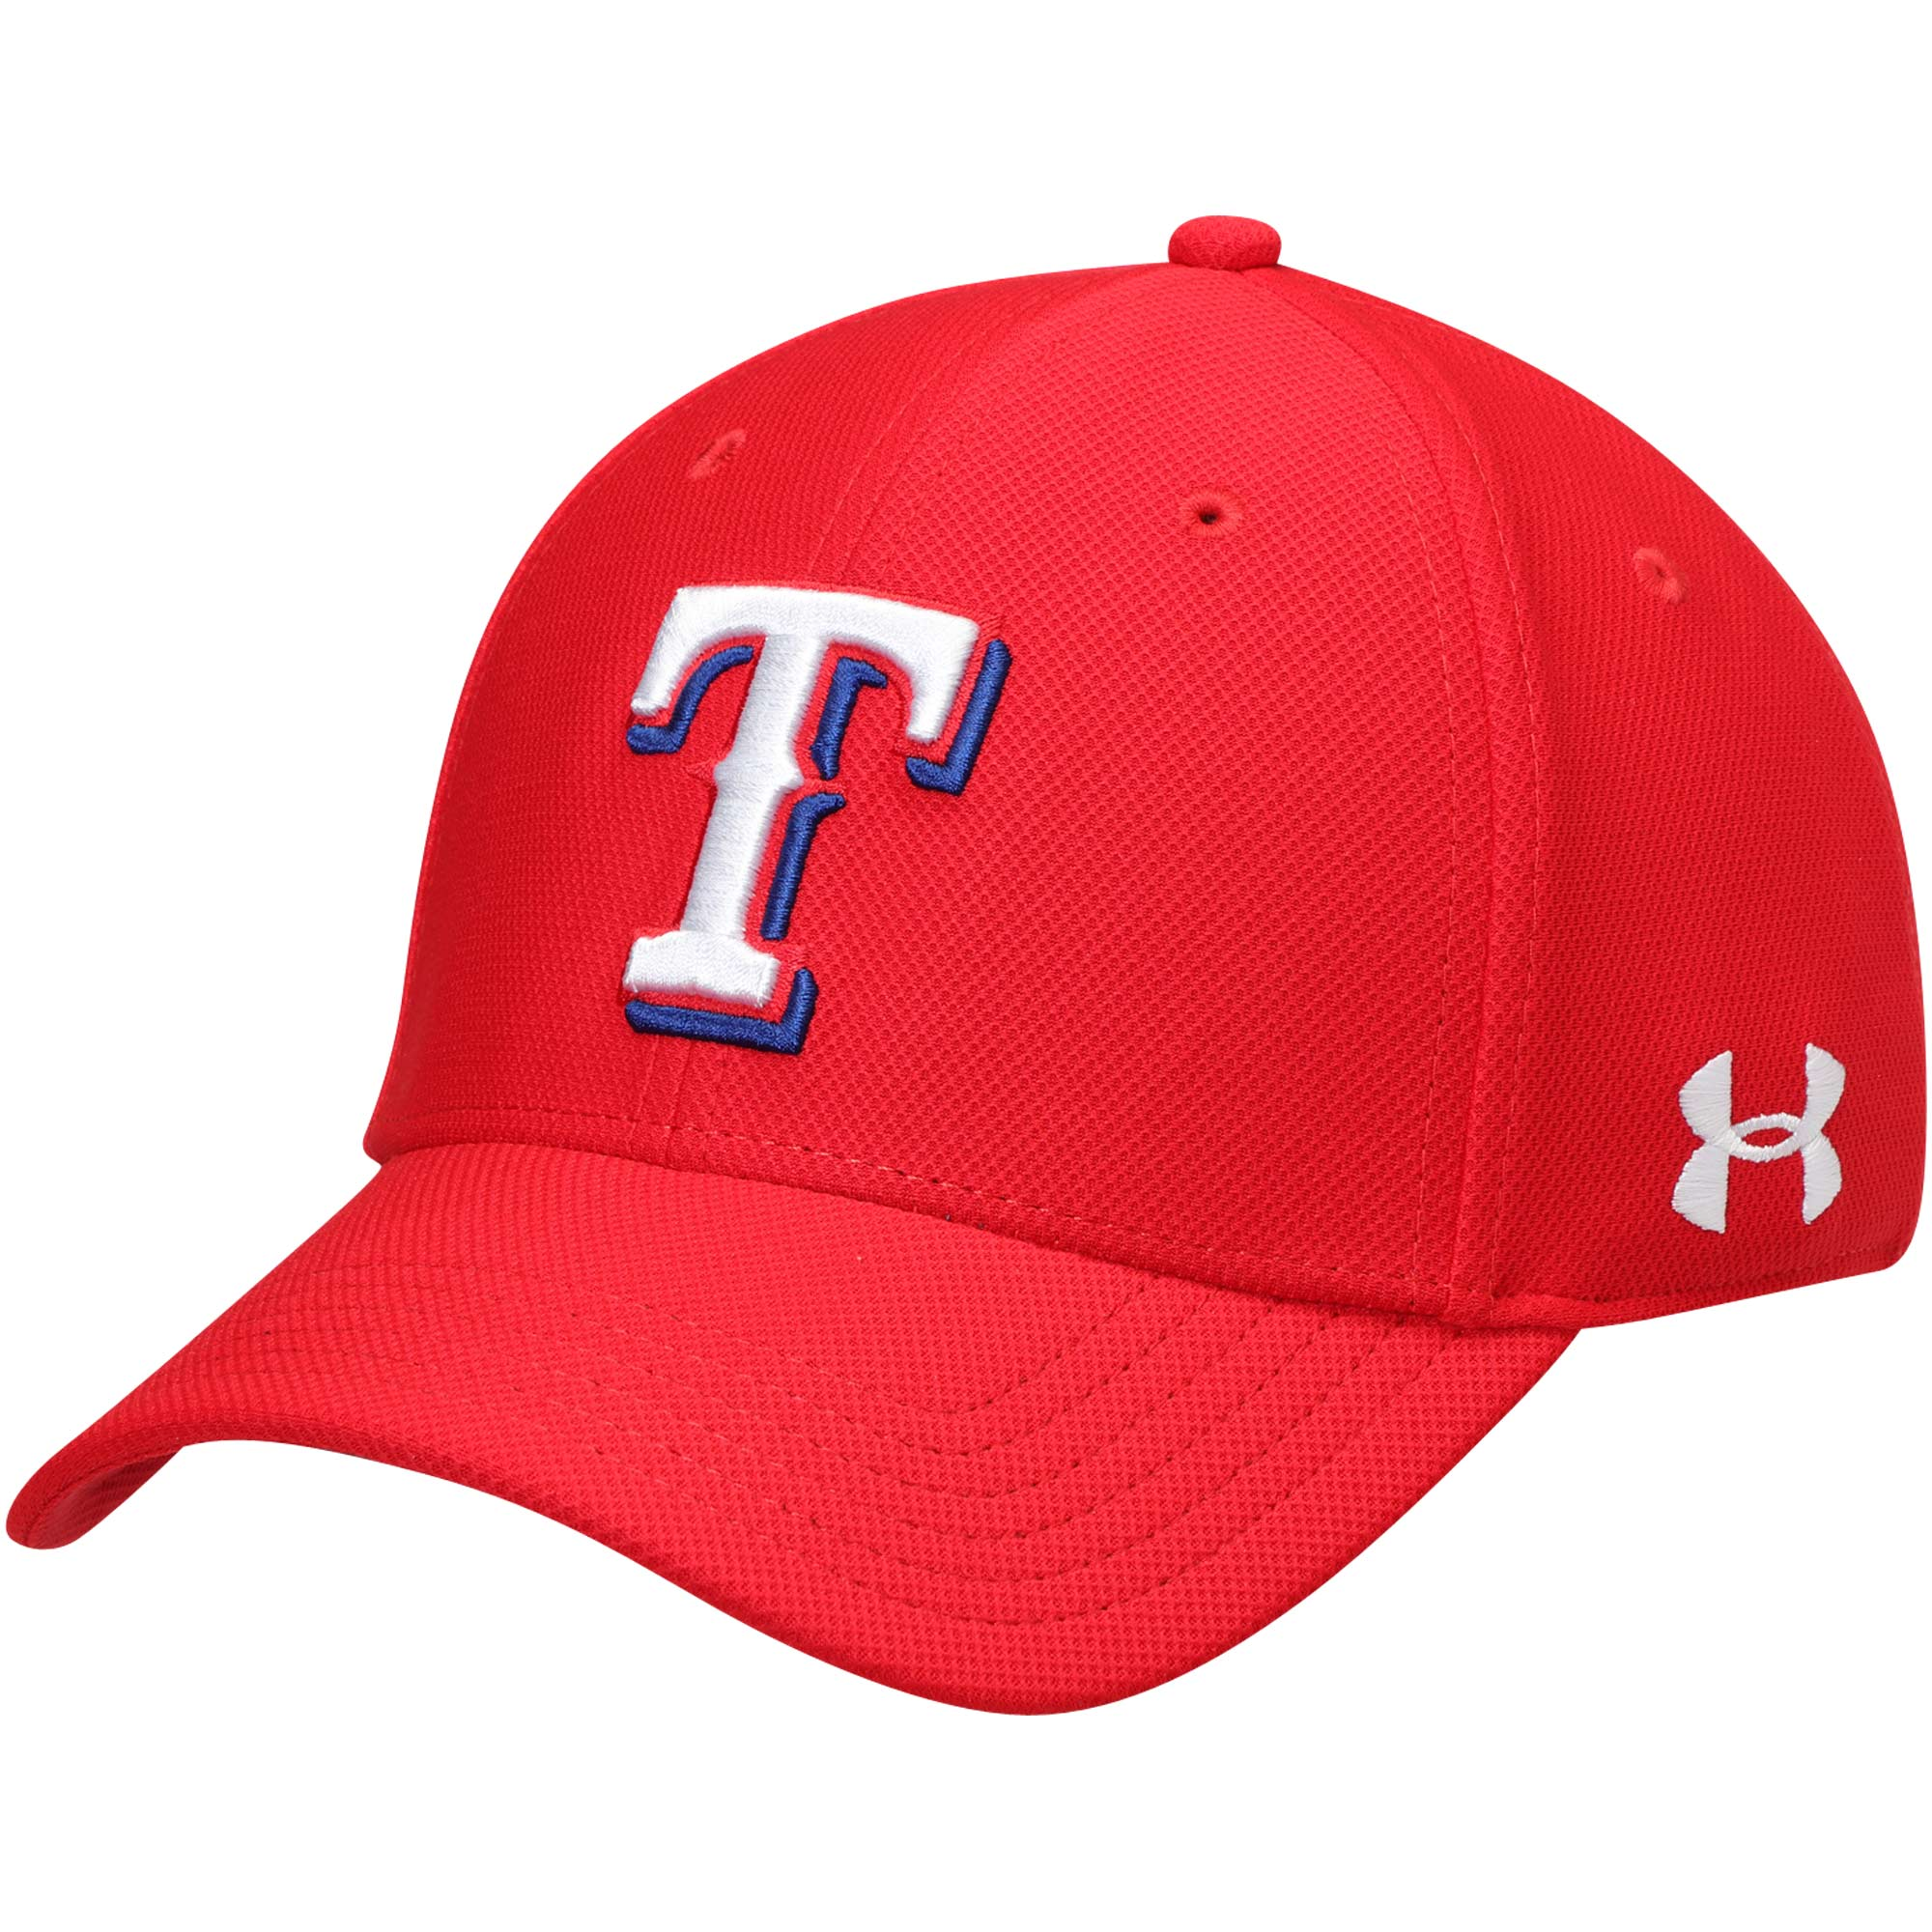 Texas Rangers Under Armour Blitzing Performance Adjustable Hat - Red - OSFA